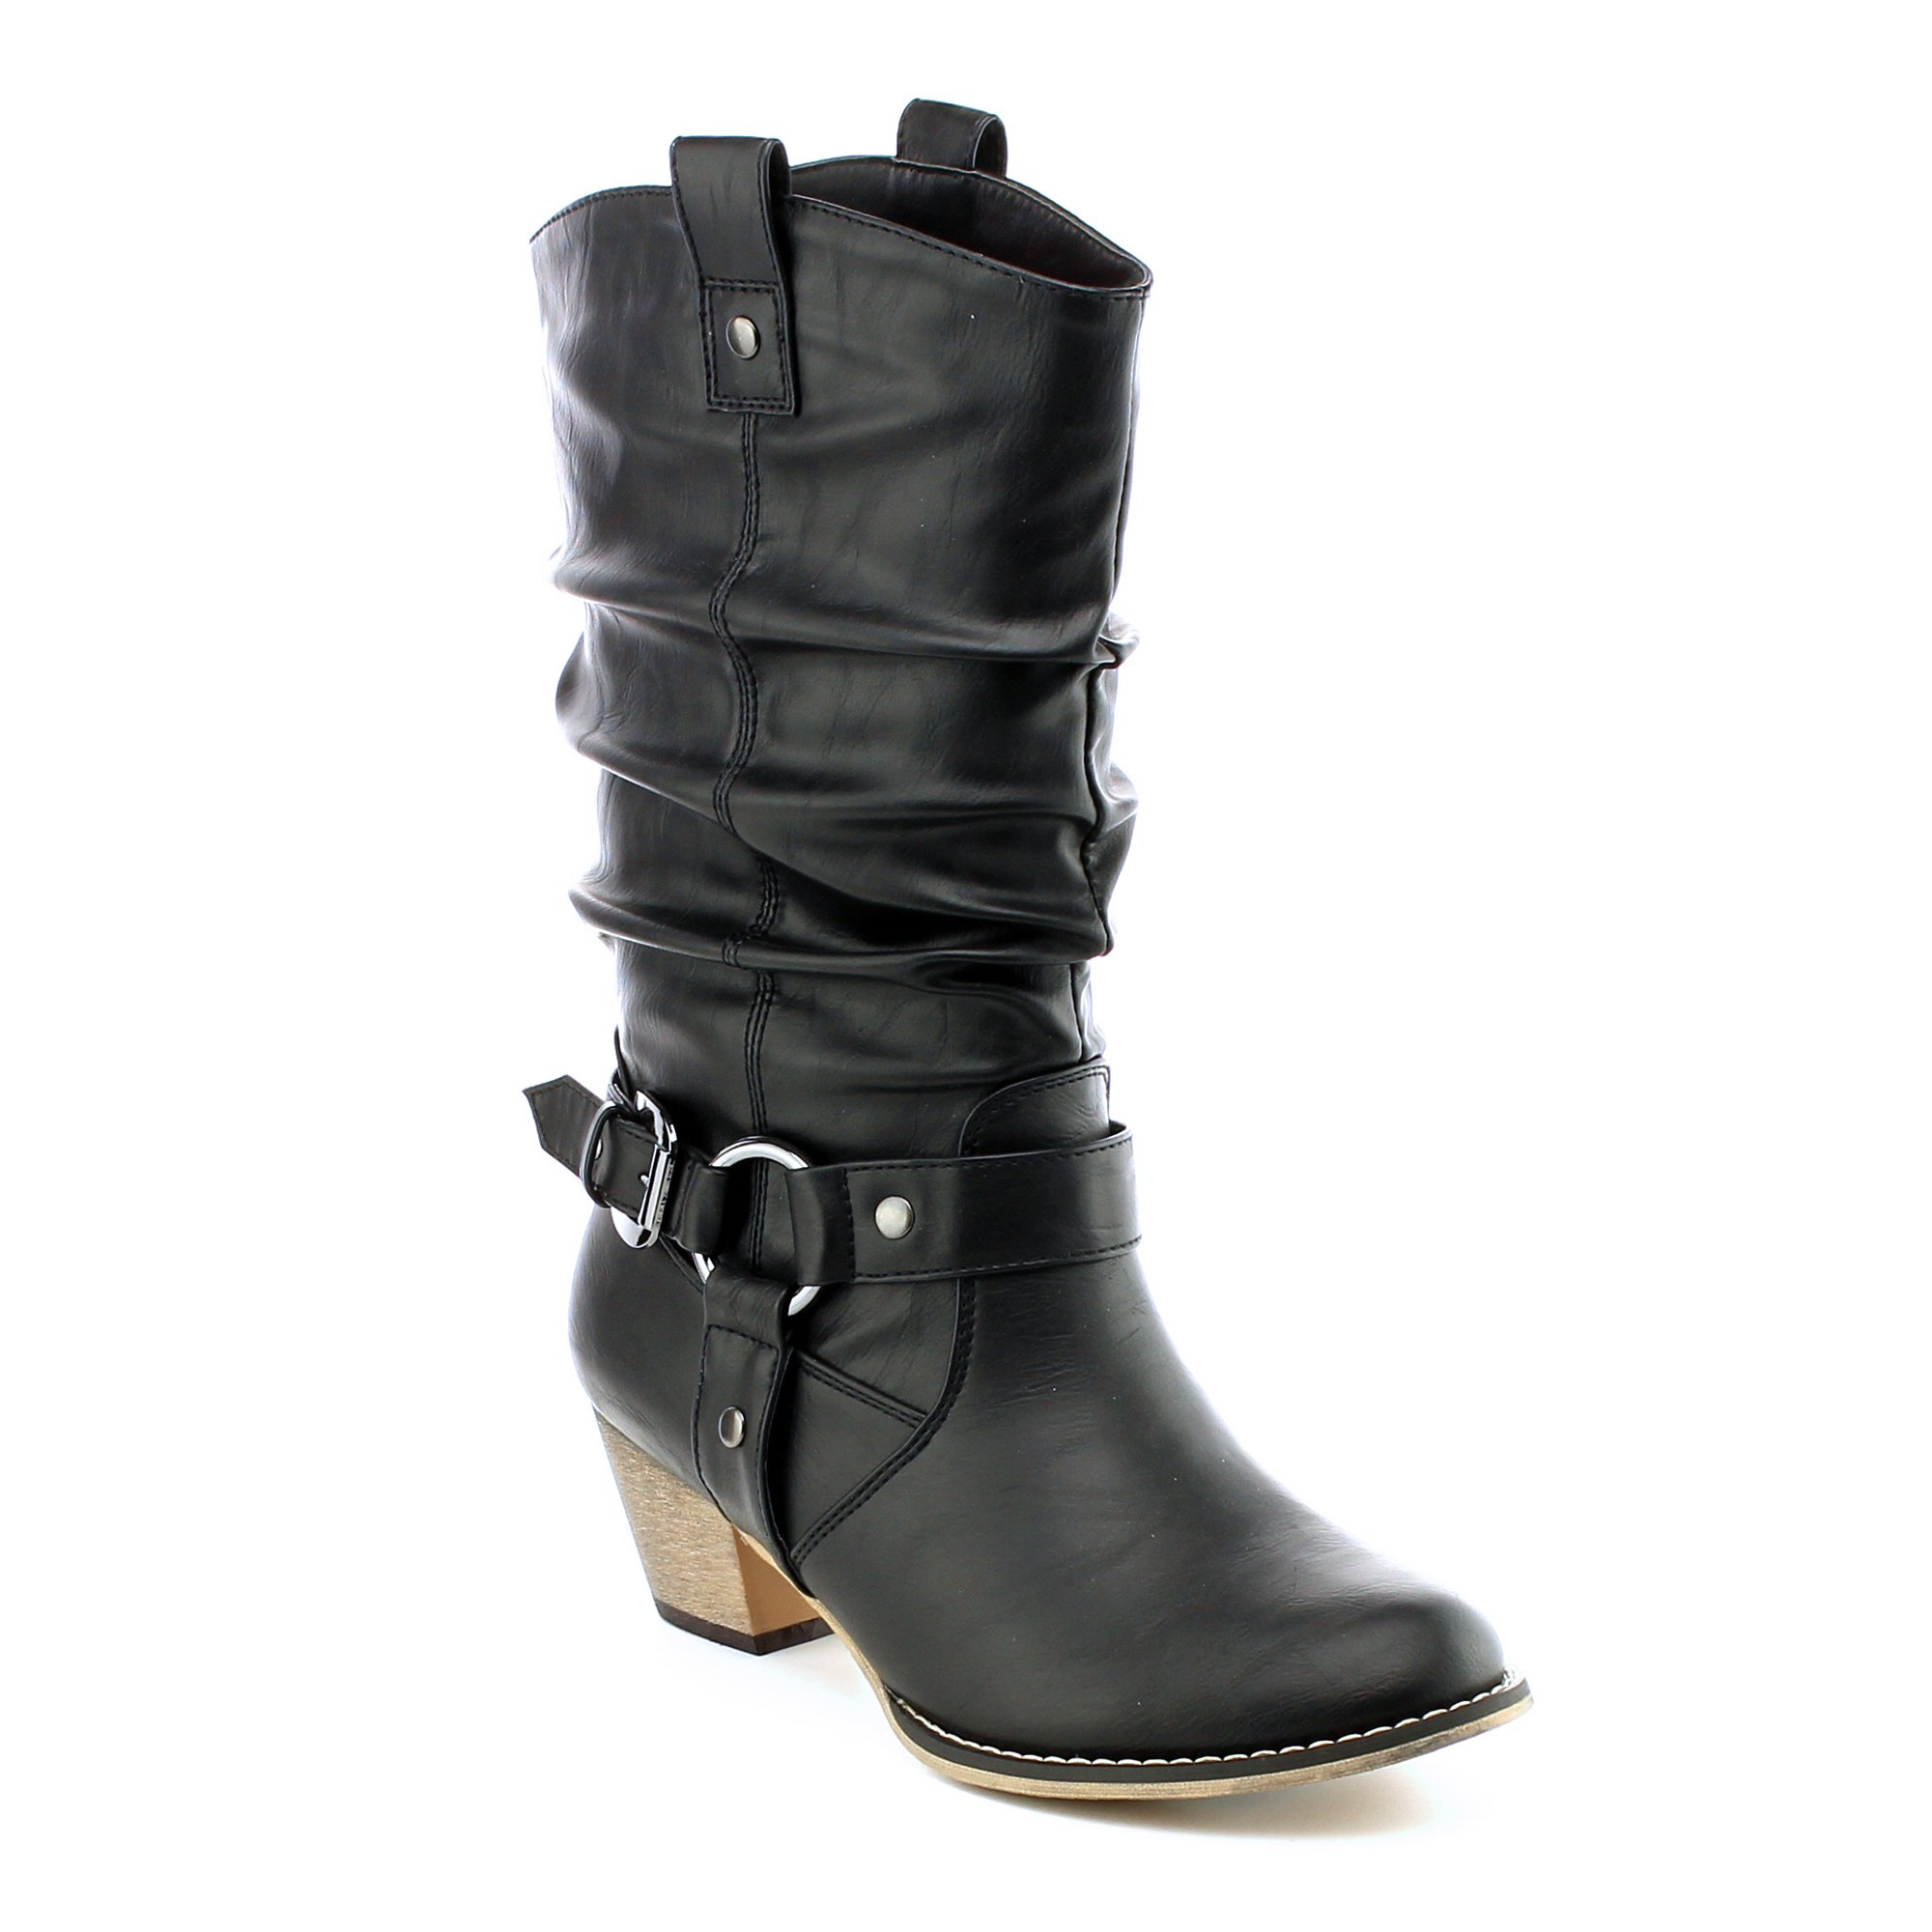 Women's Mid Calf Cowboy Boots Distressed Slouchy O-Ring Studded Pull on Block Heel Riding Boots Black 10